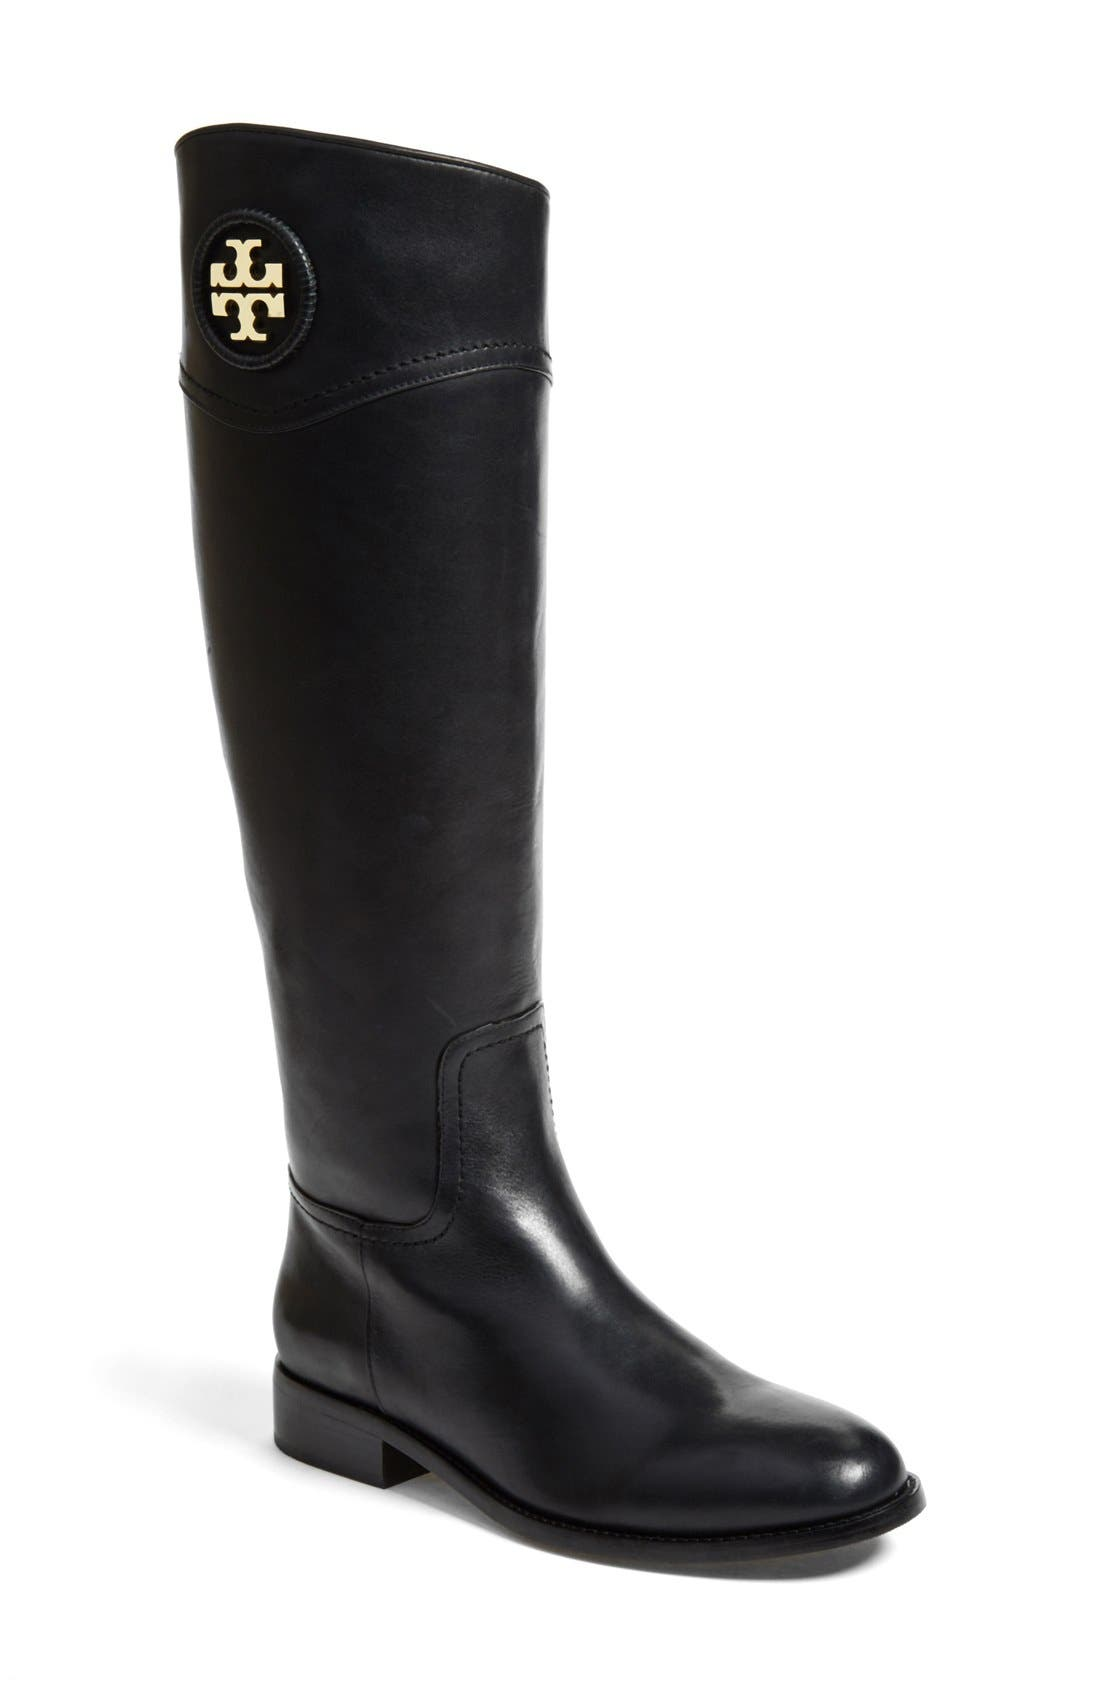 Alternate Image 1 Selected - Tory Burch 'Ashlynn' Riding Boot (Women) (Nordstrom Exclusive)